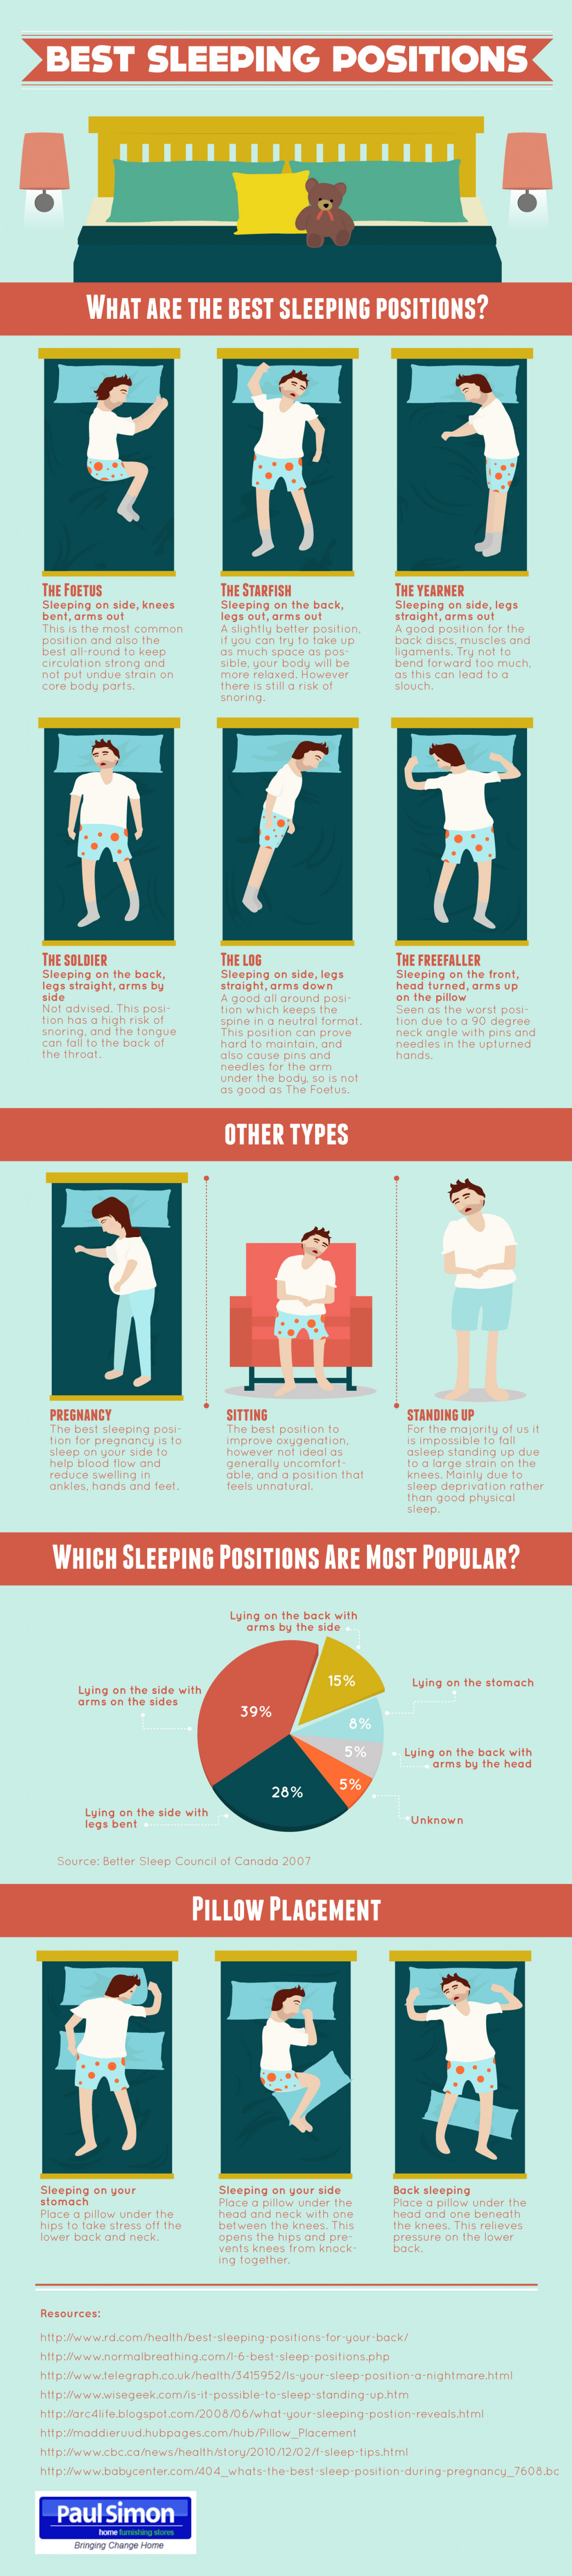 Best Sleeping Positions Visual Ly